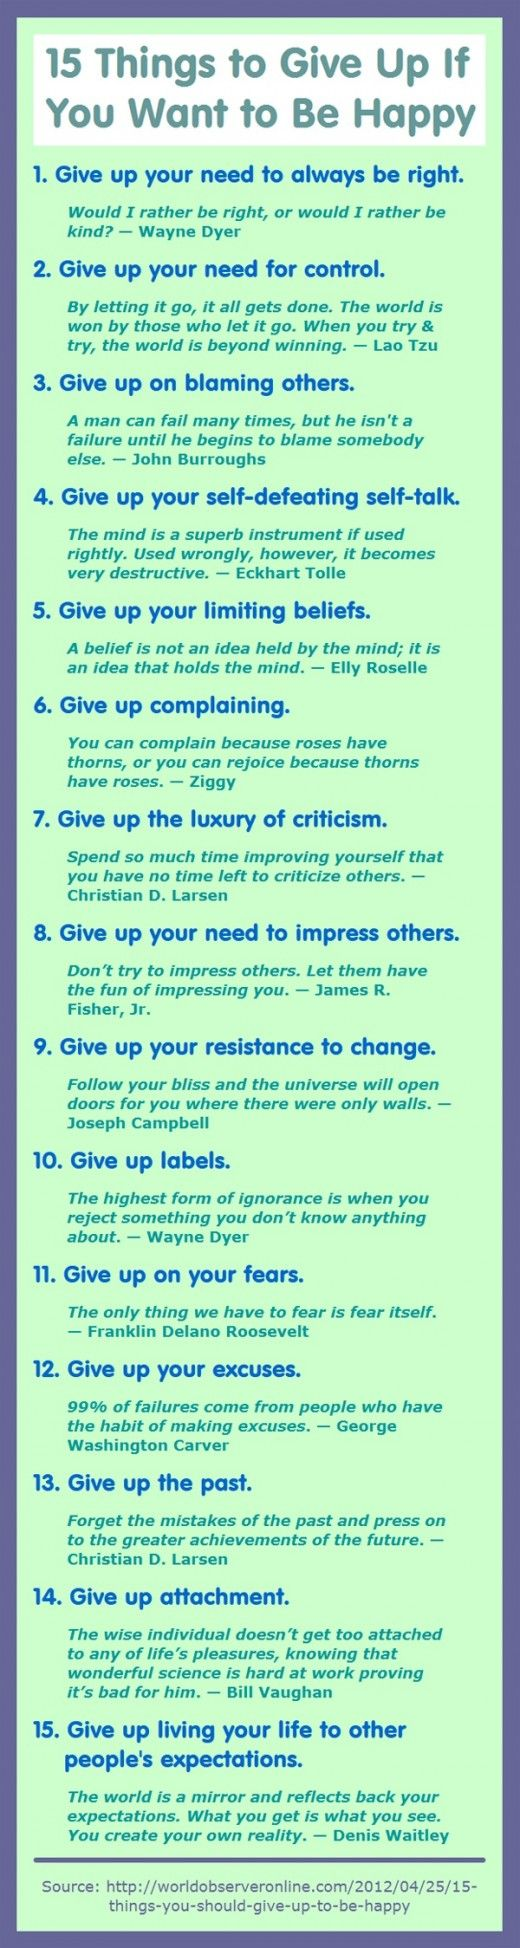 15 Things To Give Up If You Want To Be Happy #infographic